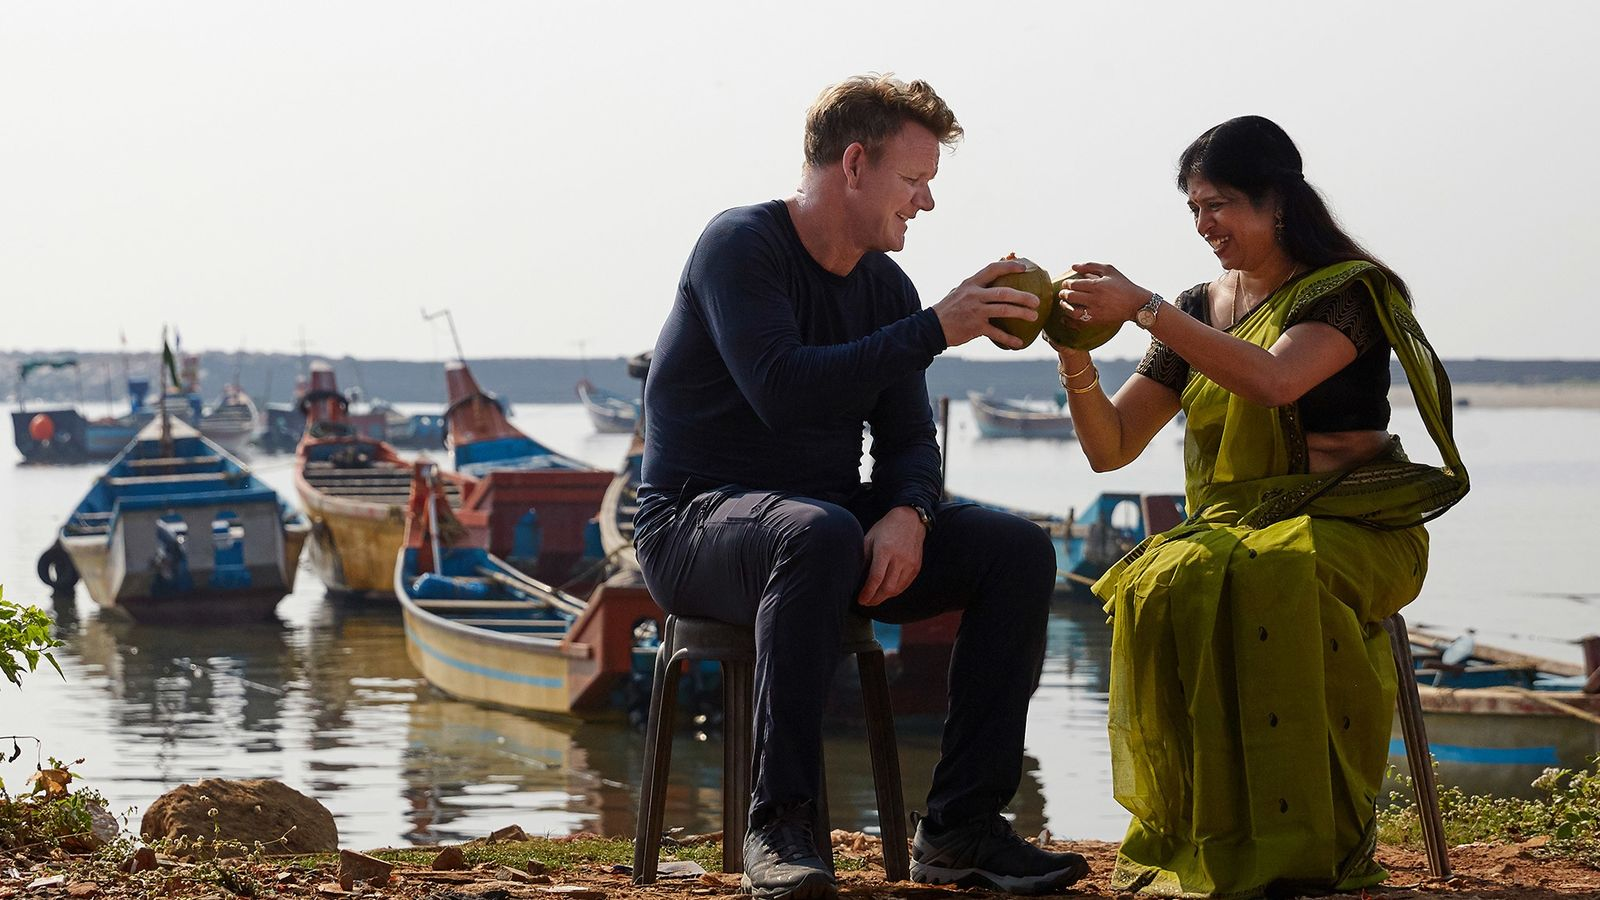 How to cook a piranha? Gordon Ramsay on skills he learned making travel TV